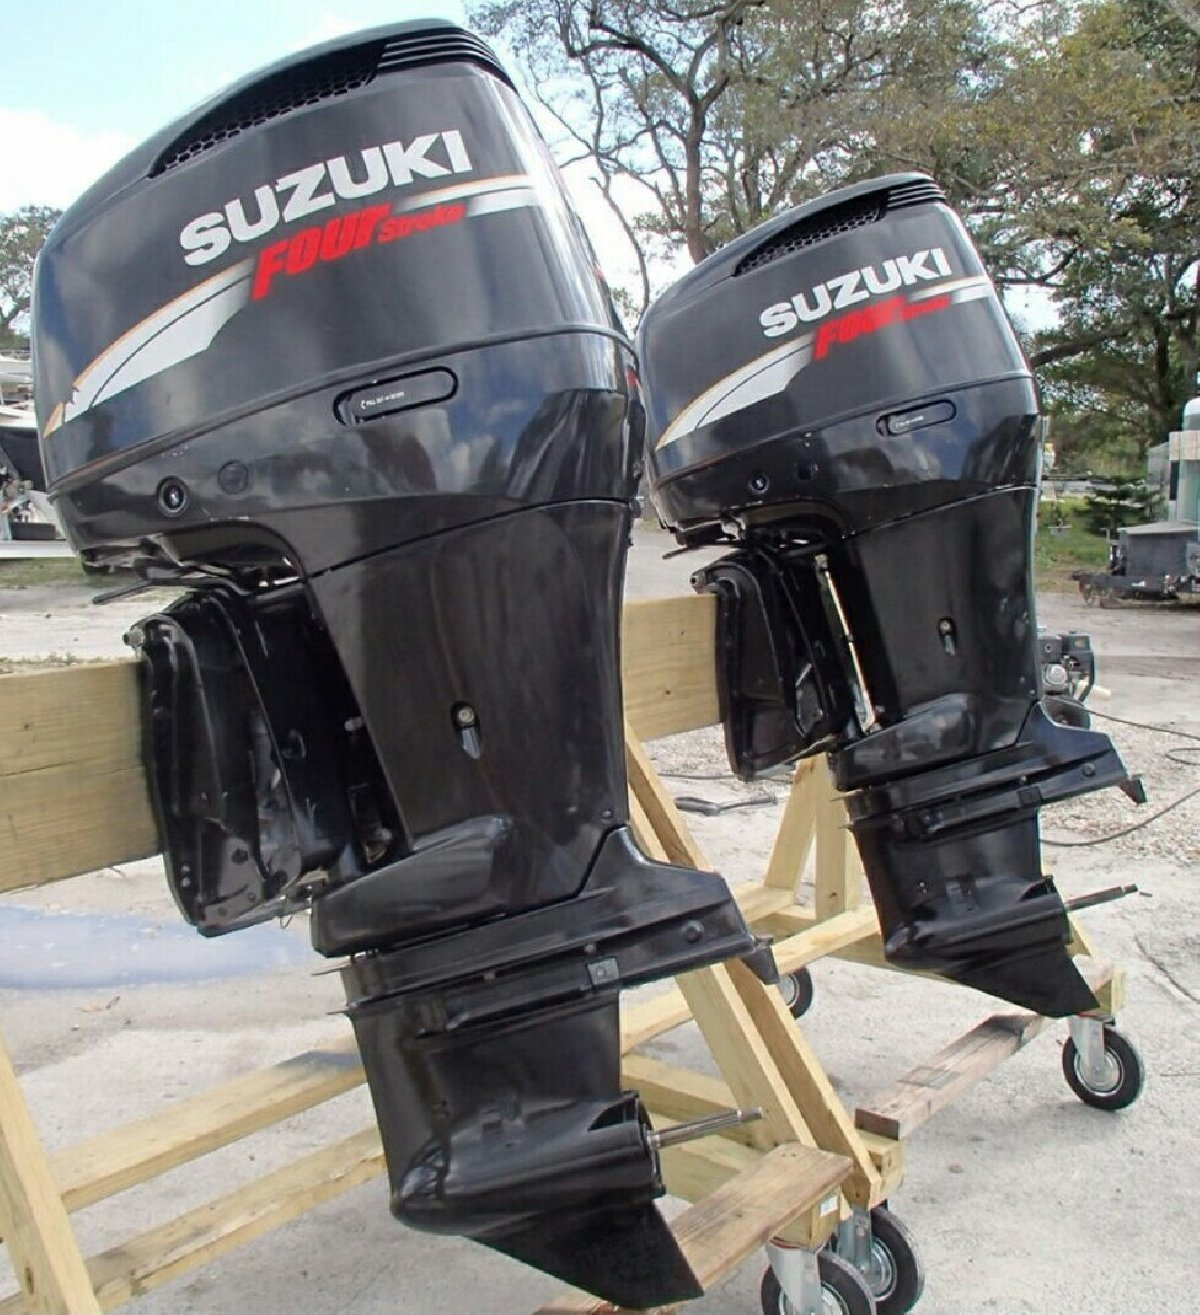 New/Used Outboard Motor Engine,Trailers,Minn Kota, for sale